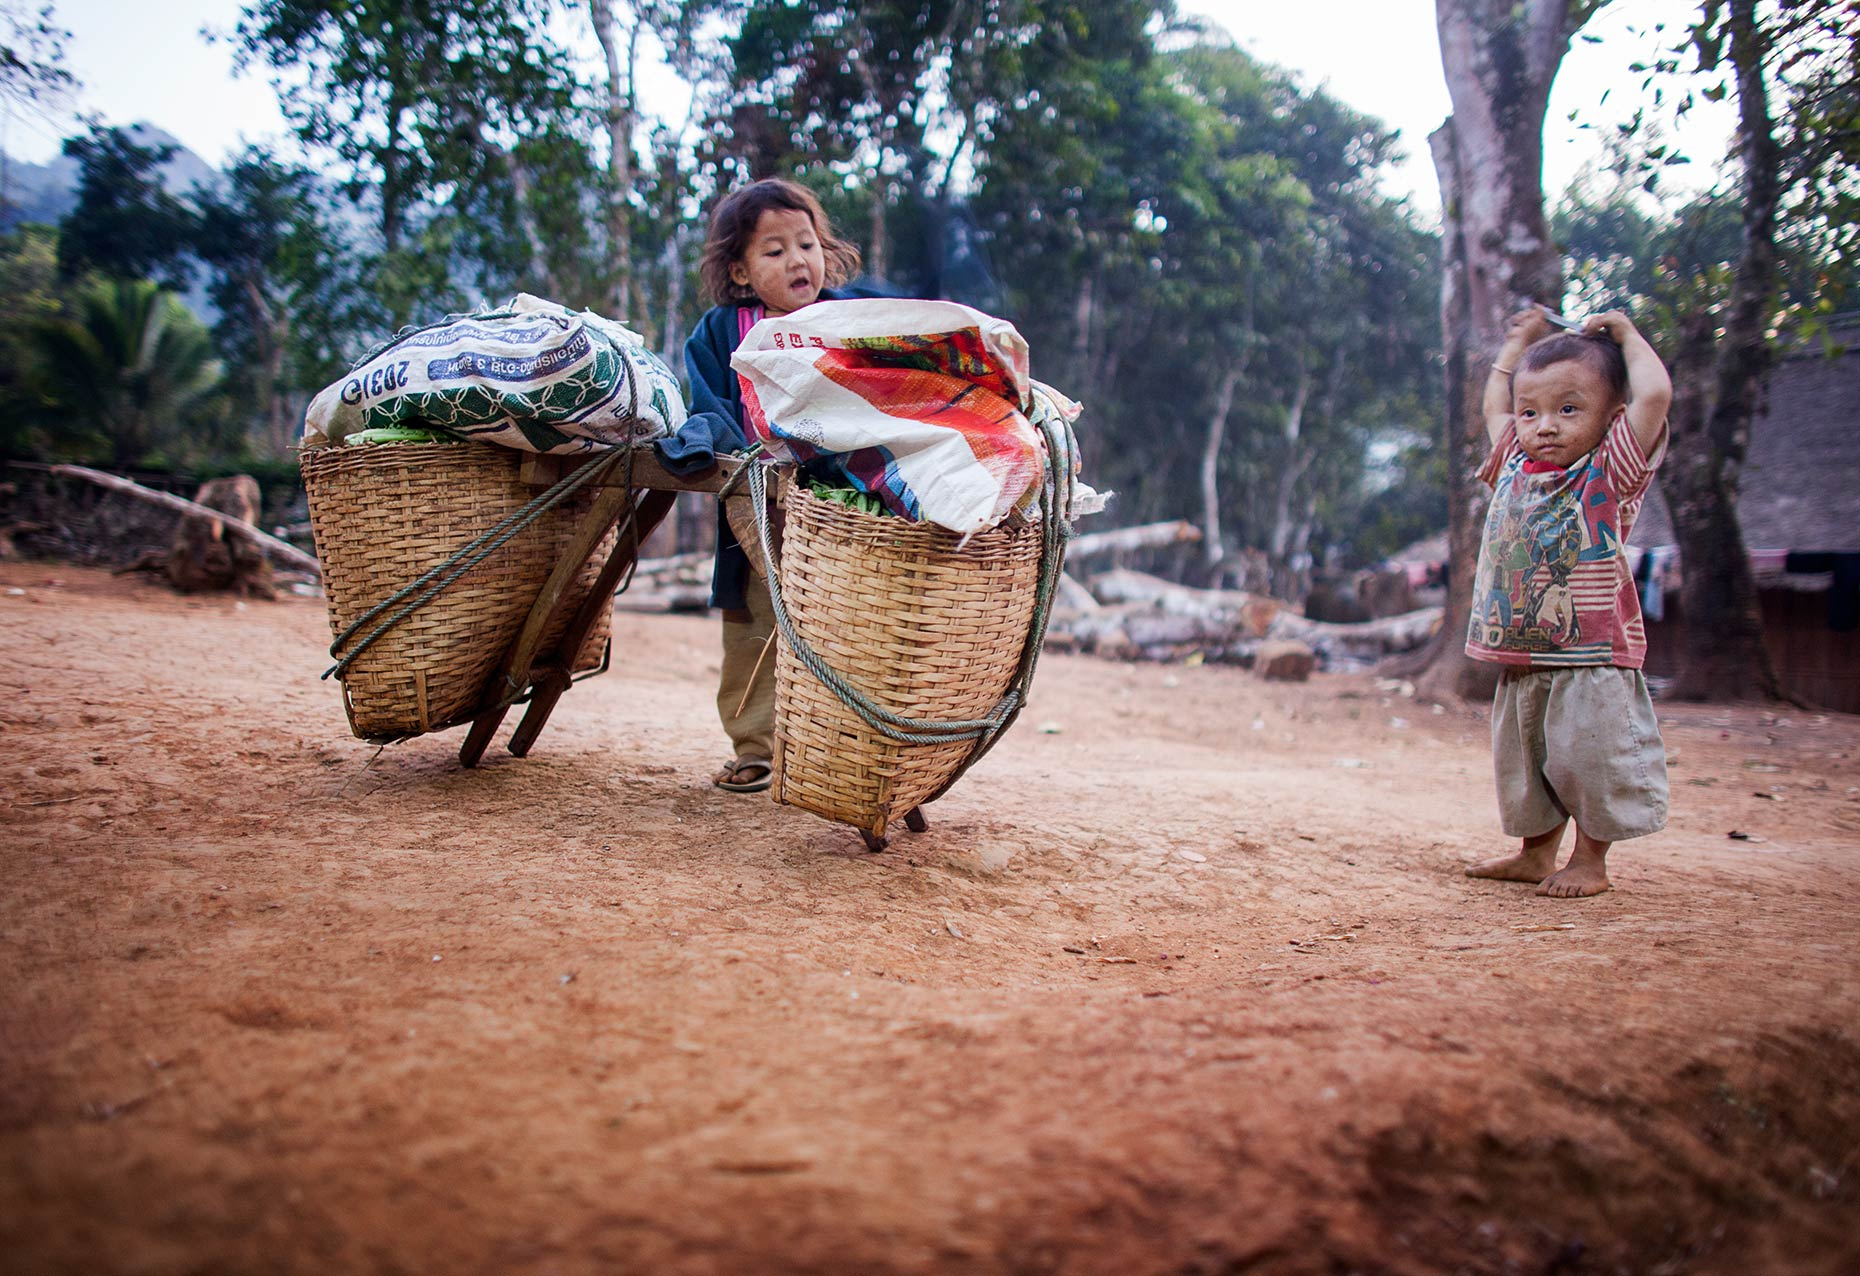 Laos children playing